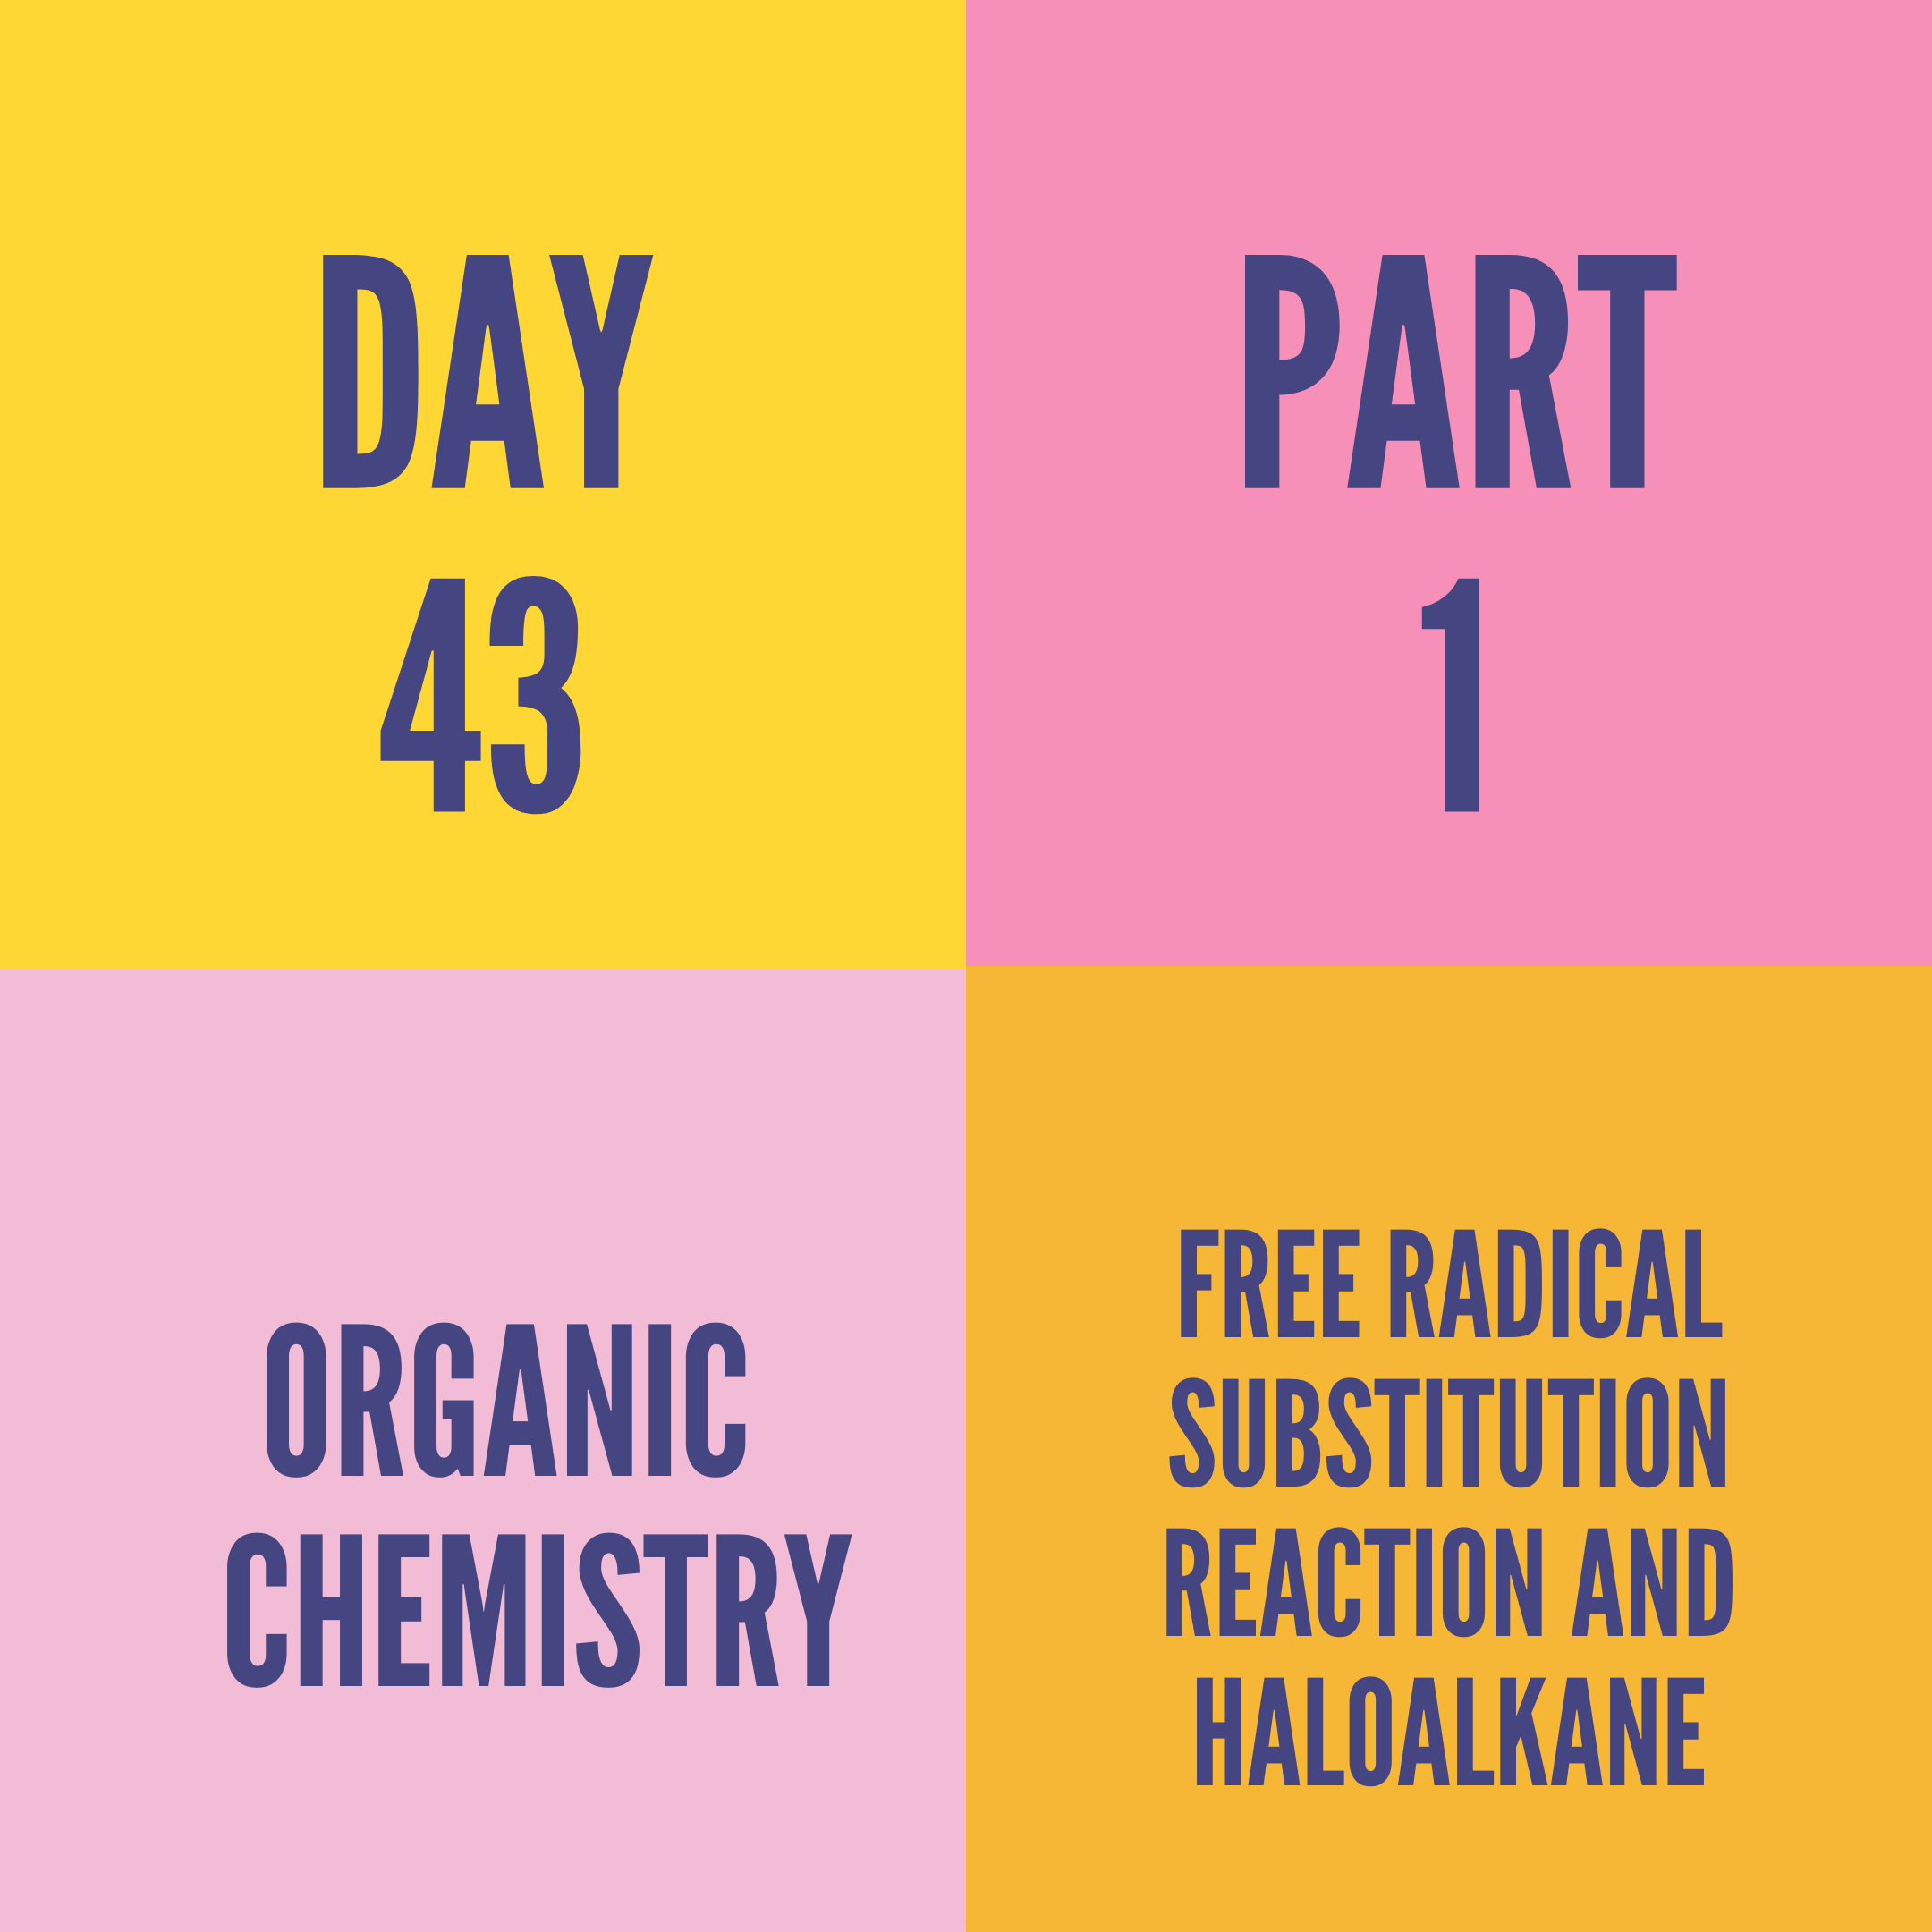 DAY-43 PART-1   FREE RADICAL SUBSTITUTION REACTION AND HALOALKANE